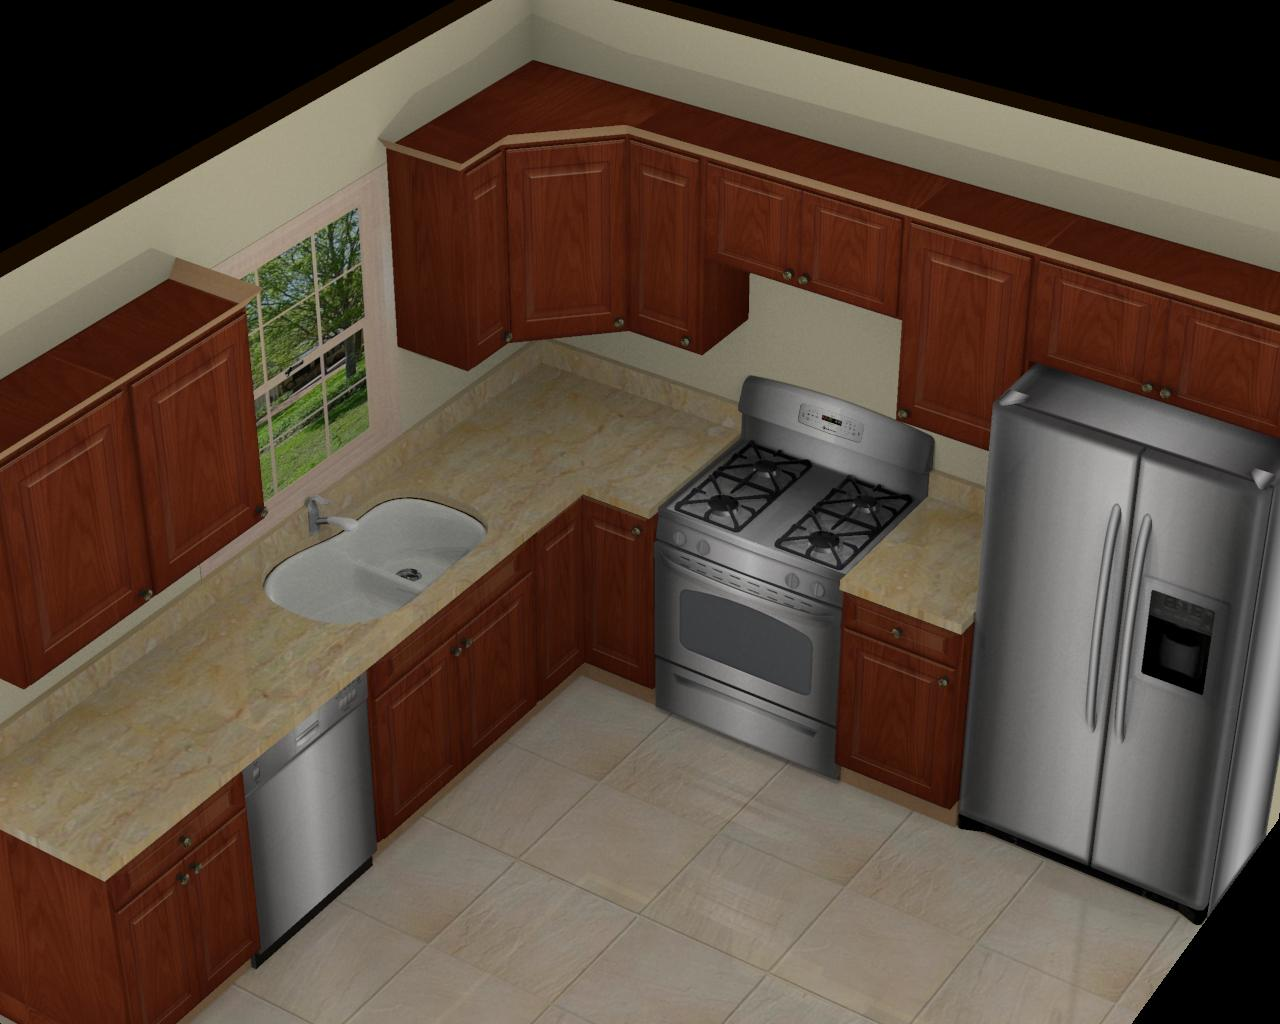 Pin 10x10 kitchen layout image search results on pinterest for Kitchen setup designs